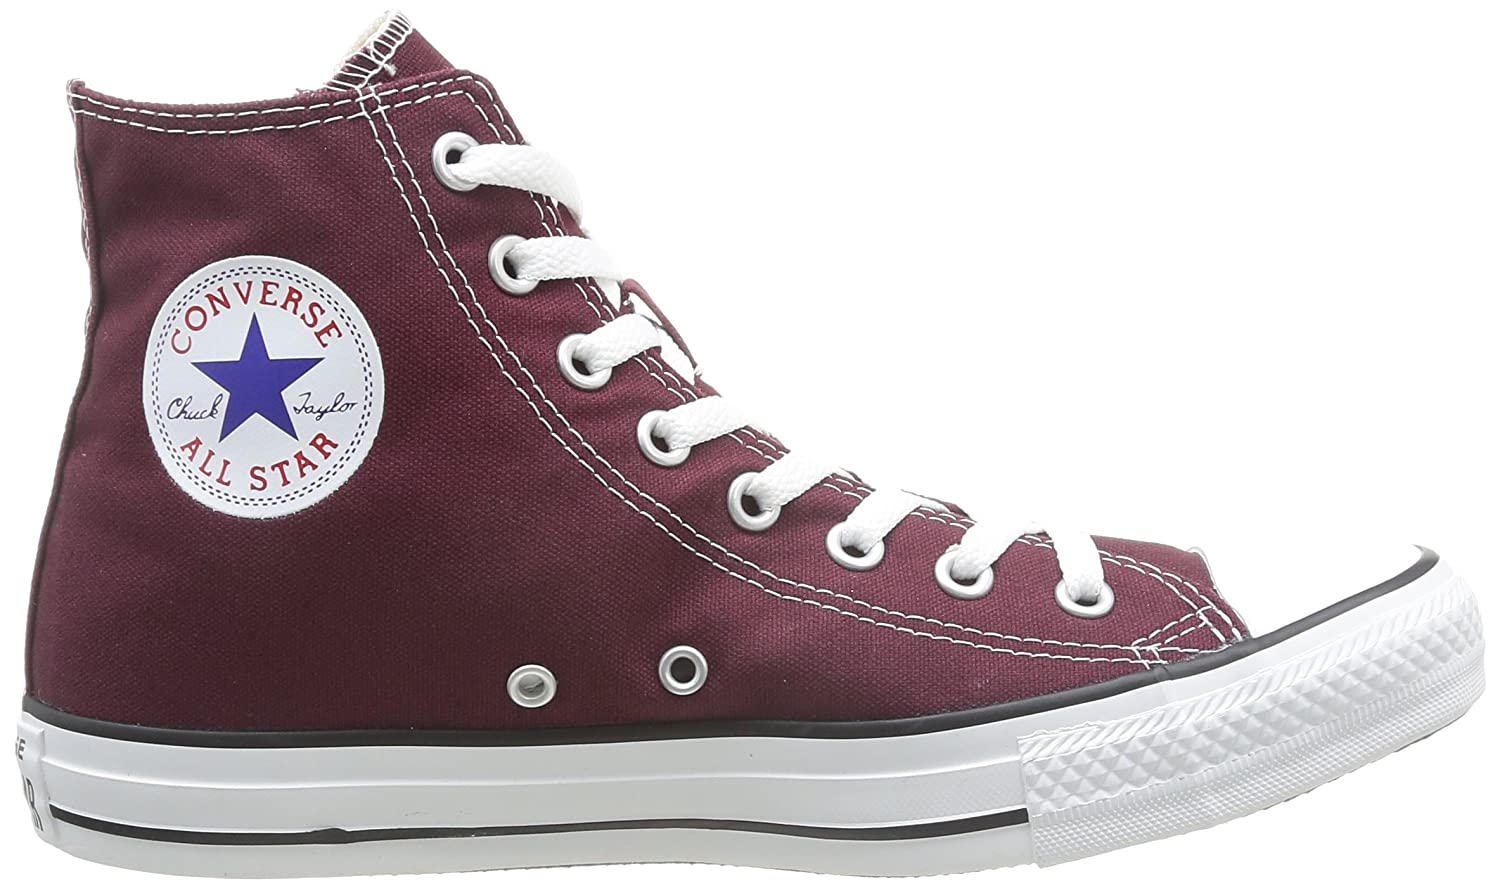 Converse Chuck Taylor Star All Star Taylor High Top B00AKK6XN8 Trekking & Hiking 207f1f